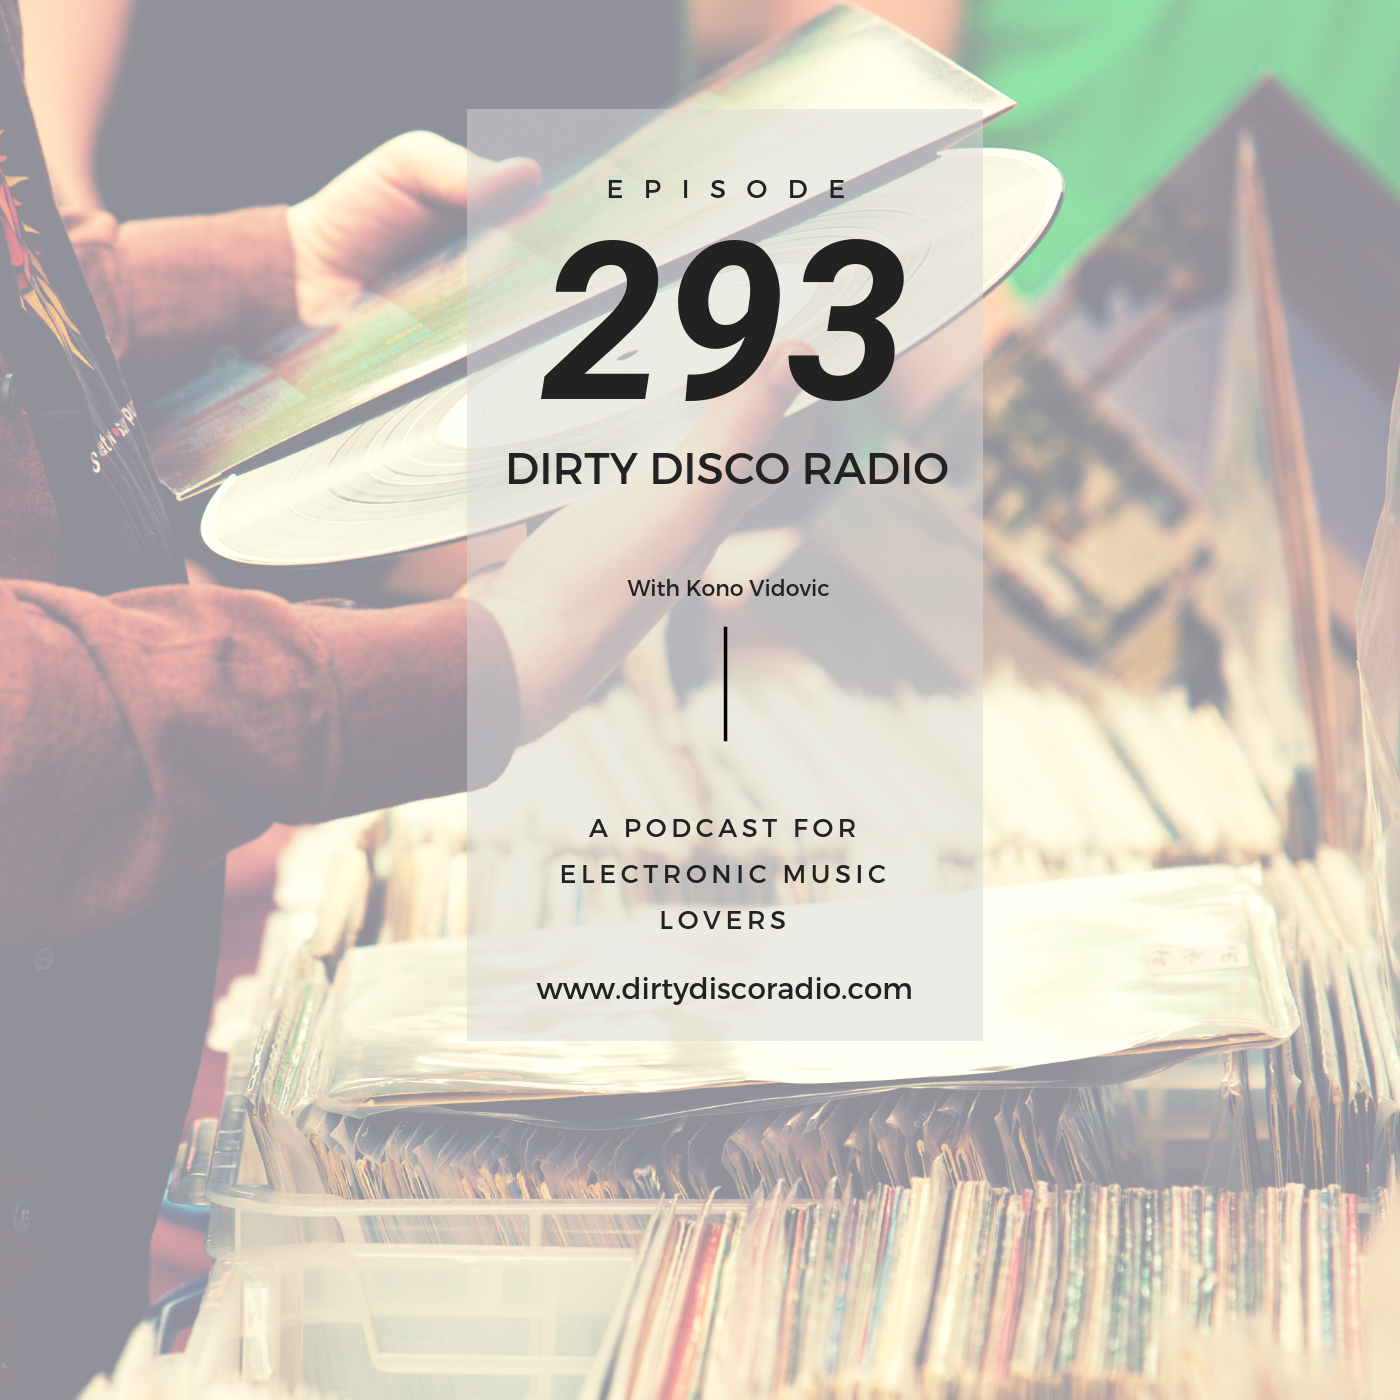 Weekly mixed playlist - Dirty Disco 293